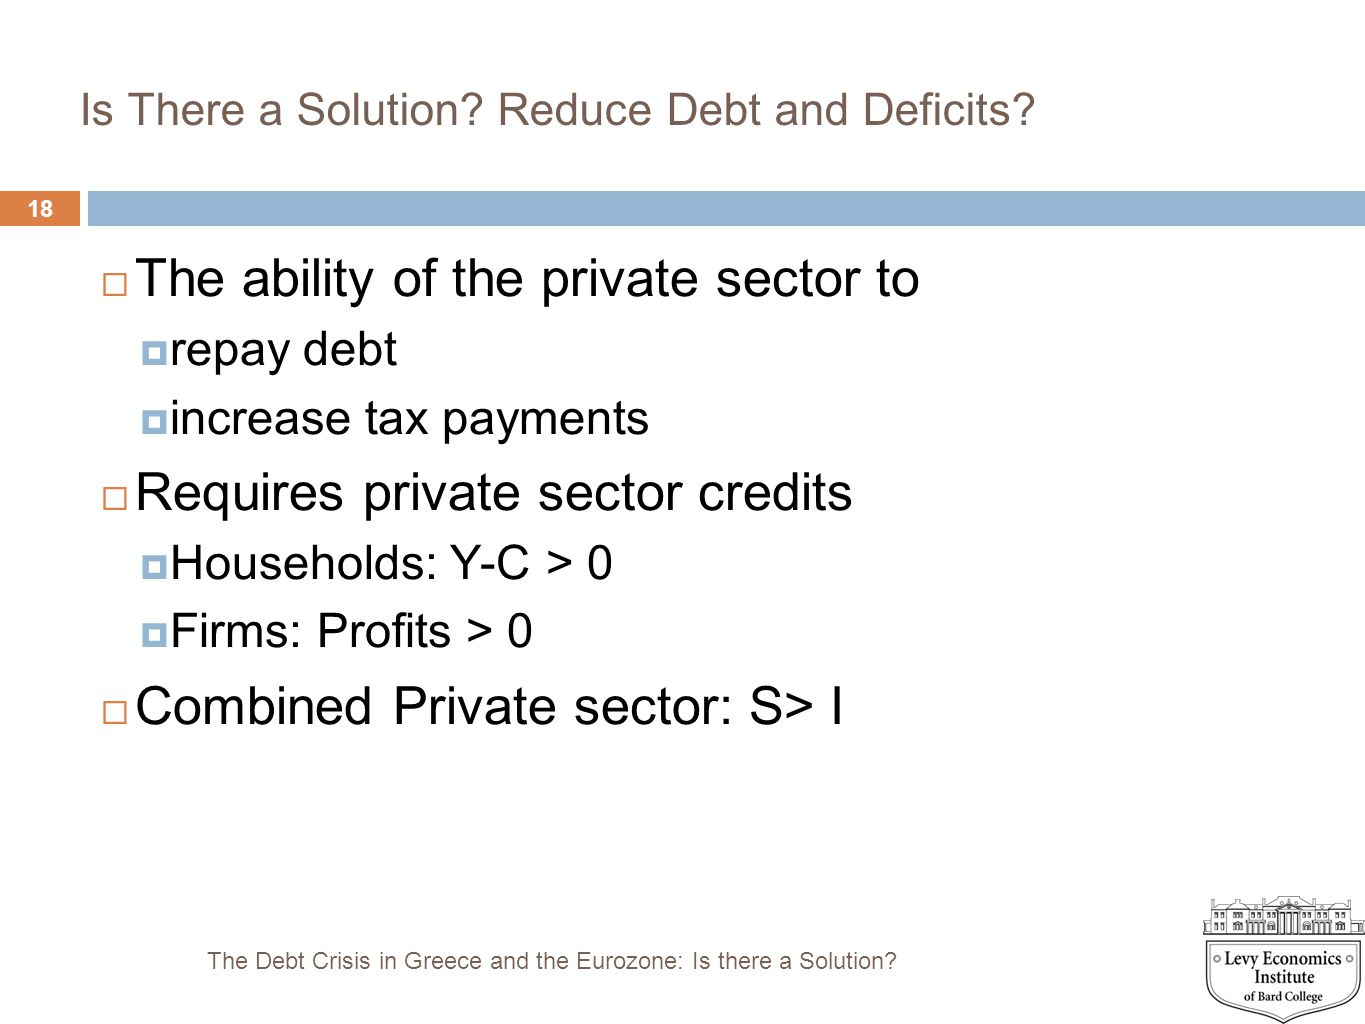 Is There a Solution Reduce Debt and Deficits